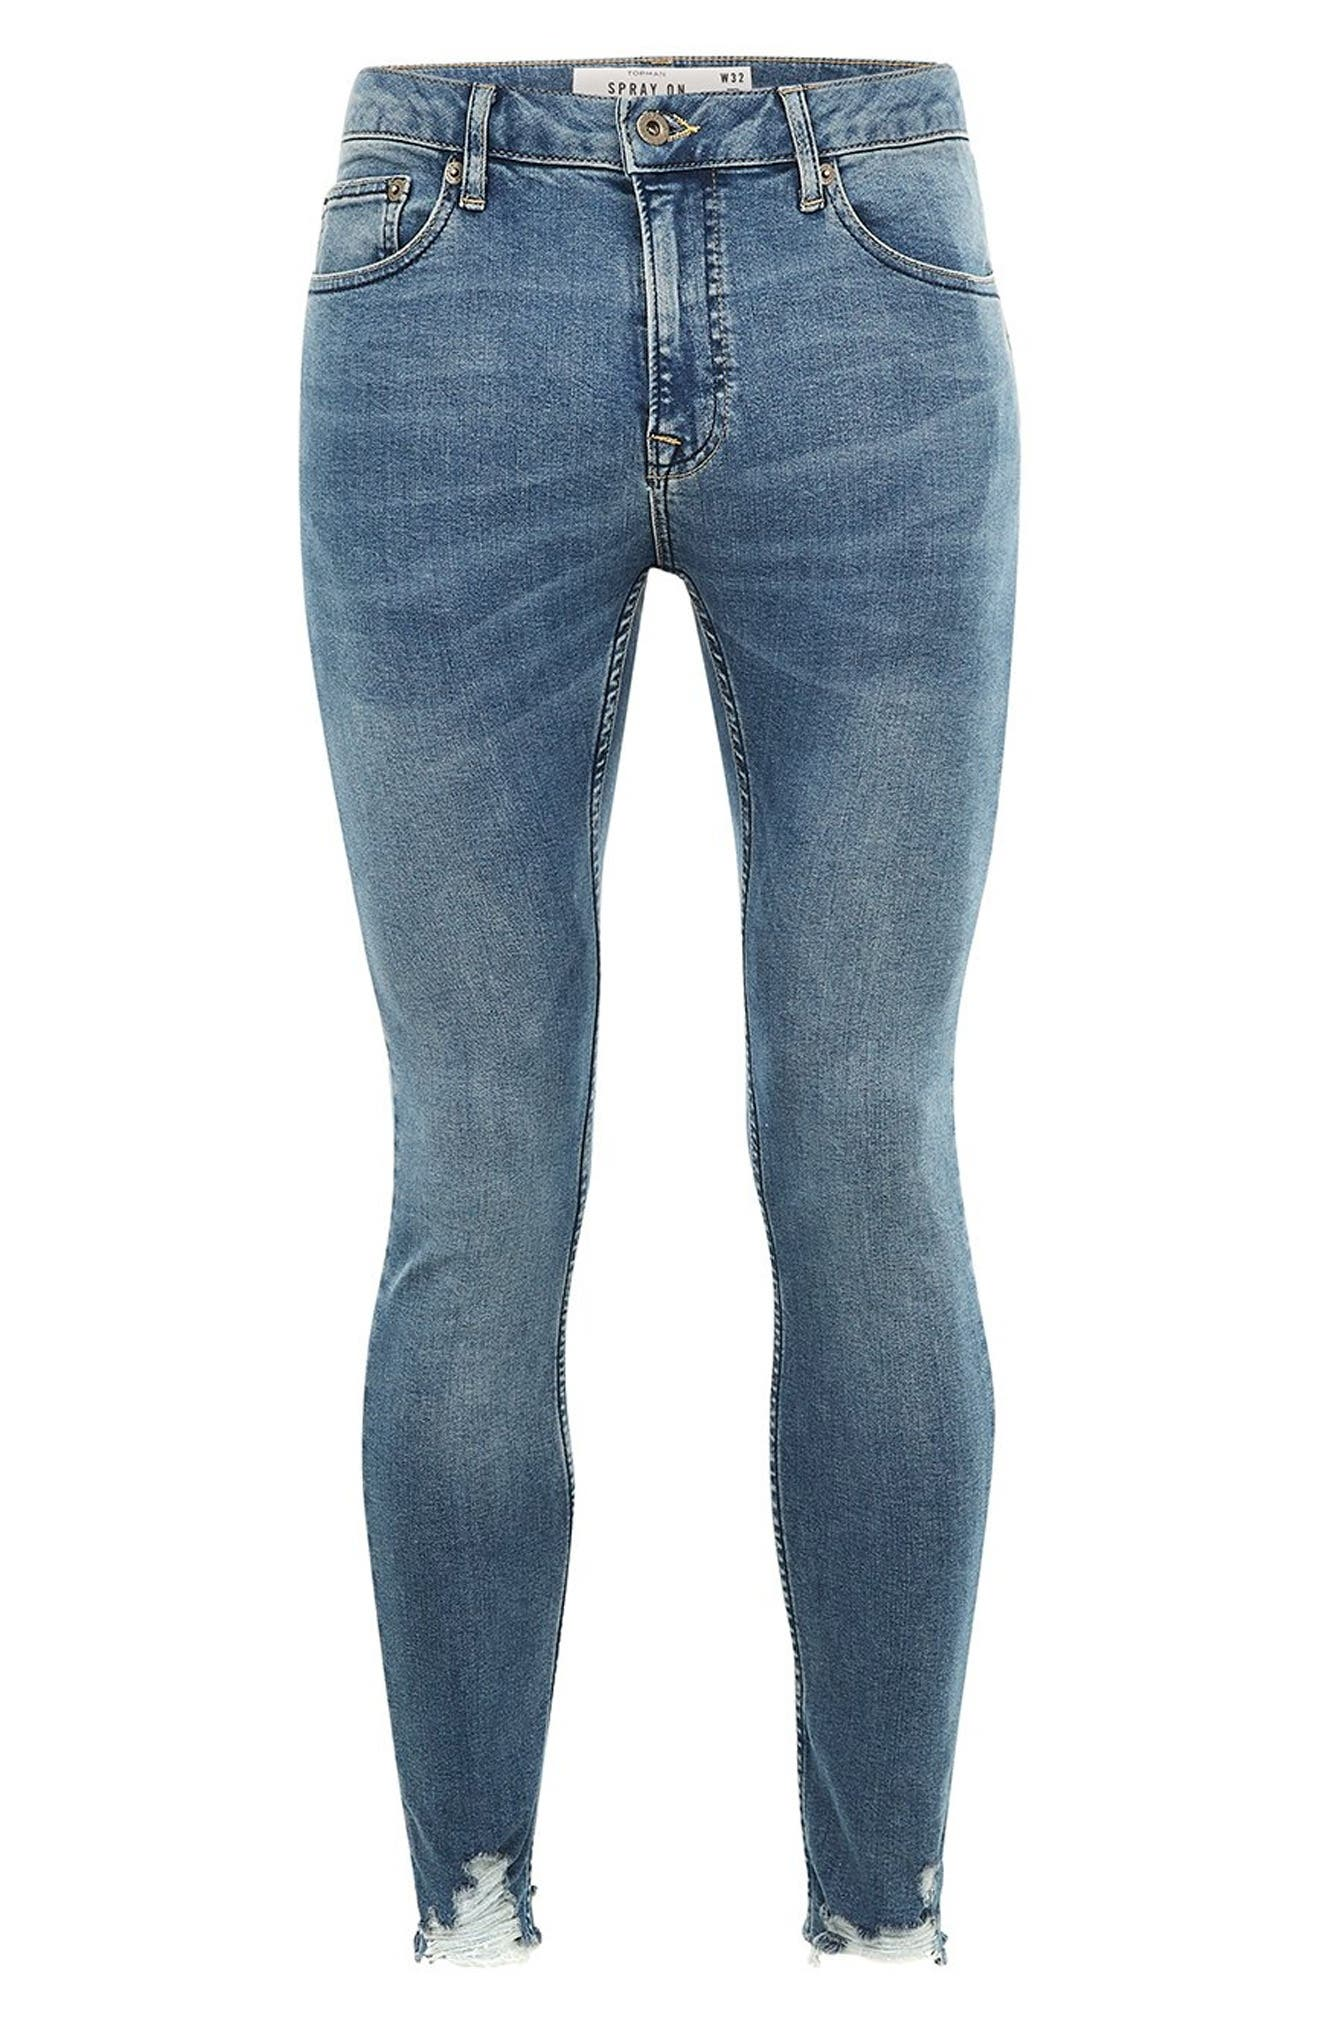 Smokey Spray-On Jeans,                             Alternate thumbnail 4, color,                             BLUE